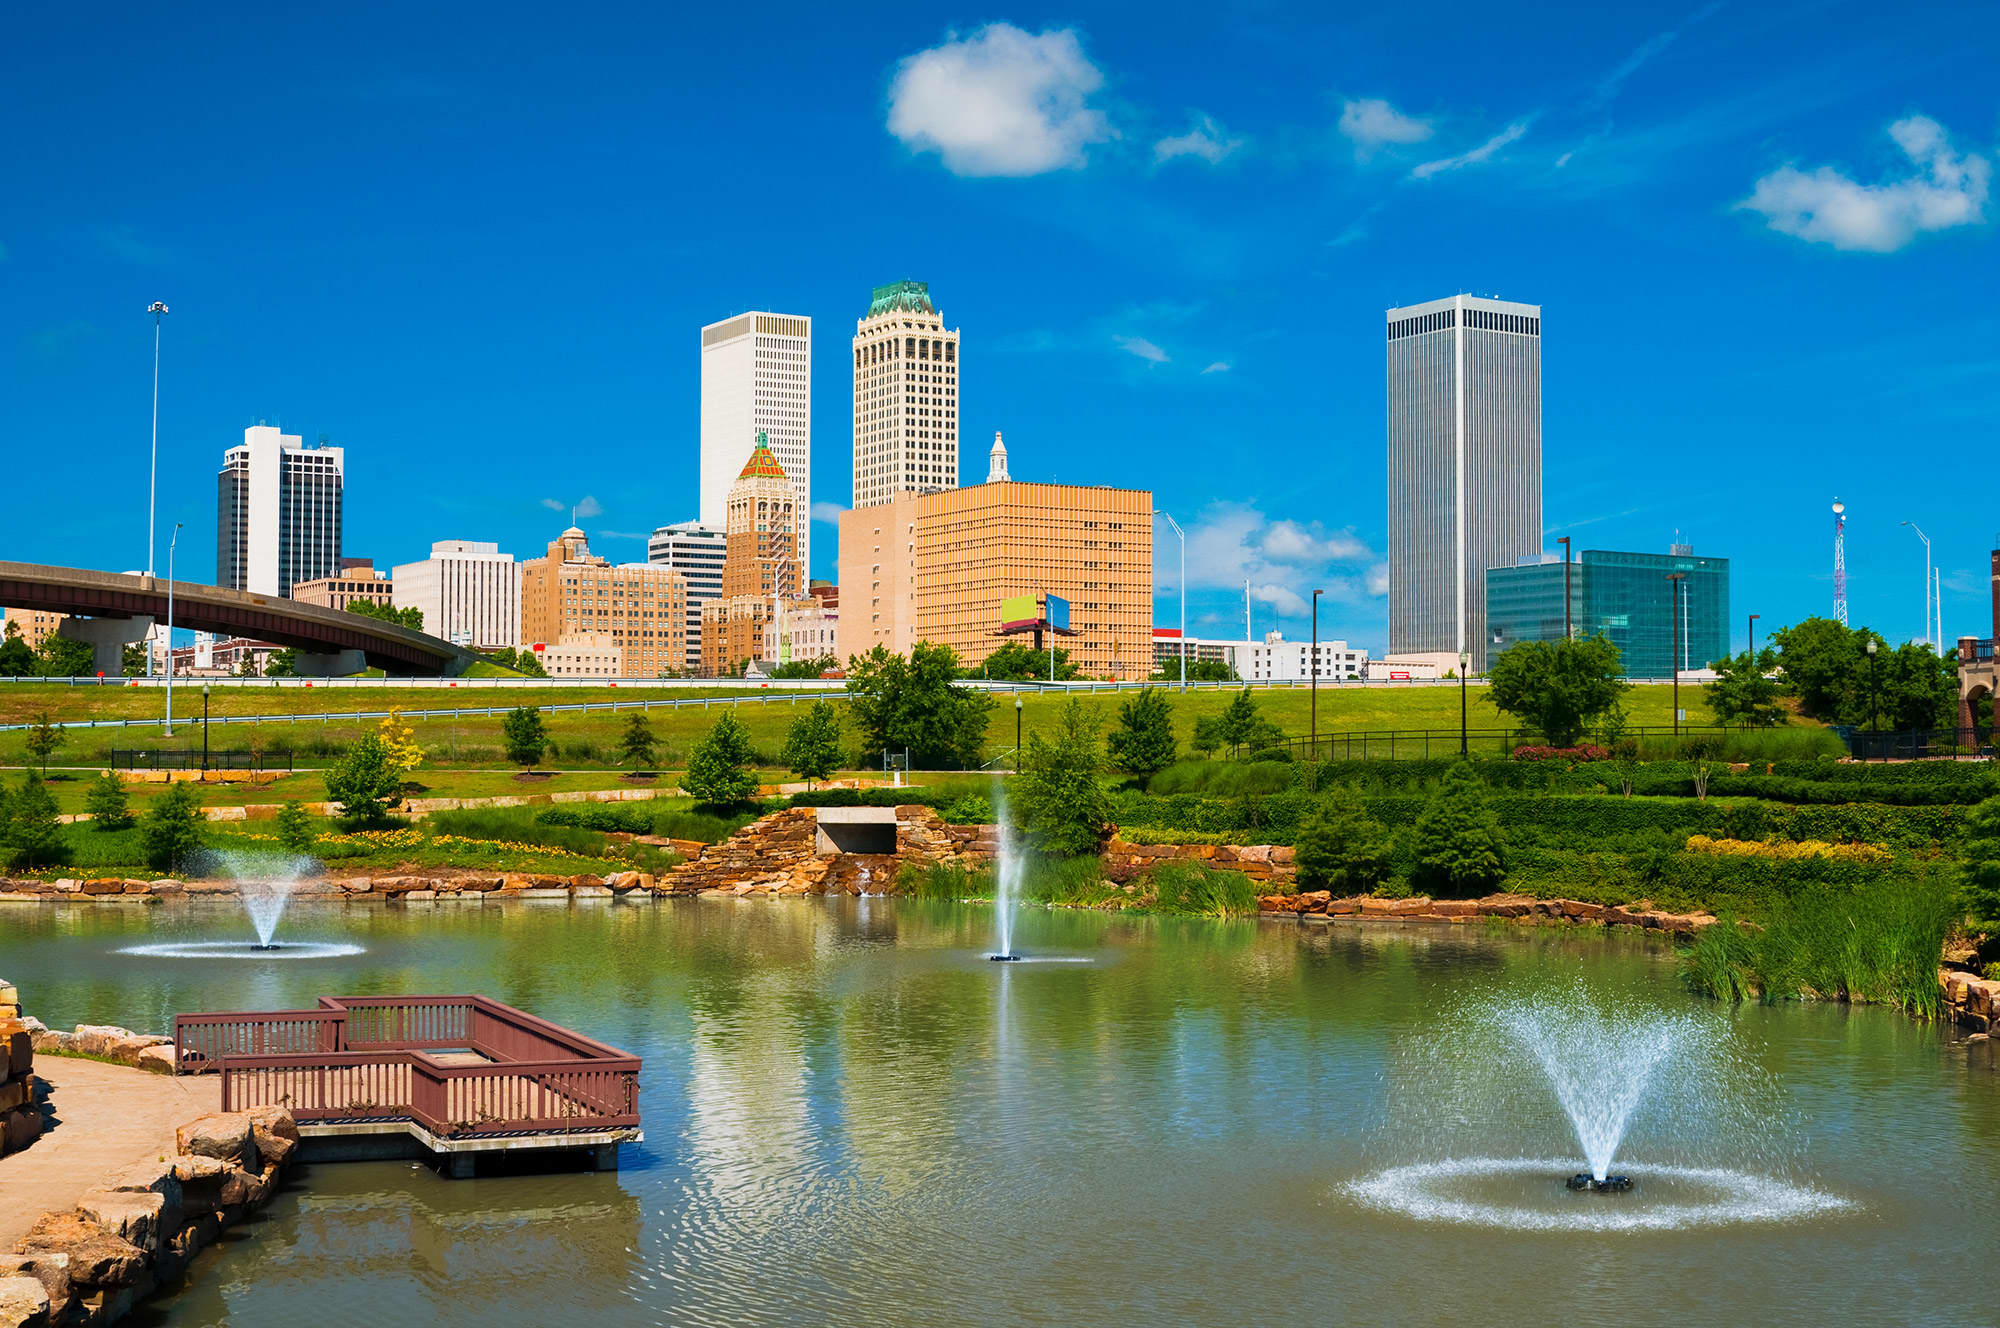 Tulsa, Oklahoma will pay you $10,000 to move there and work from home